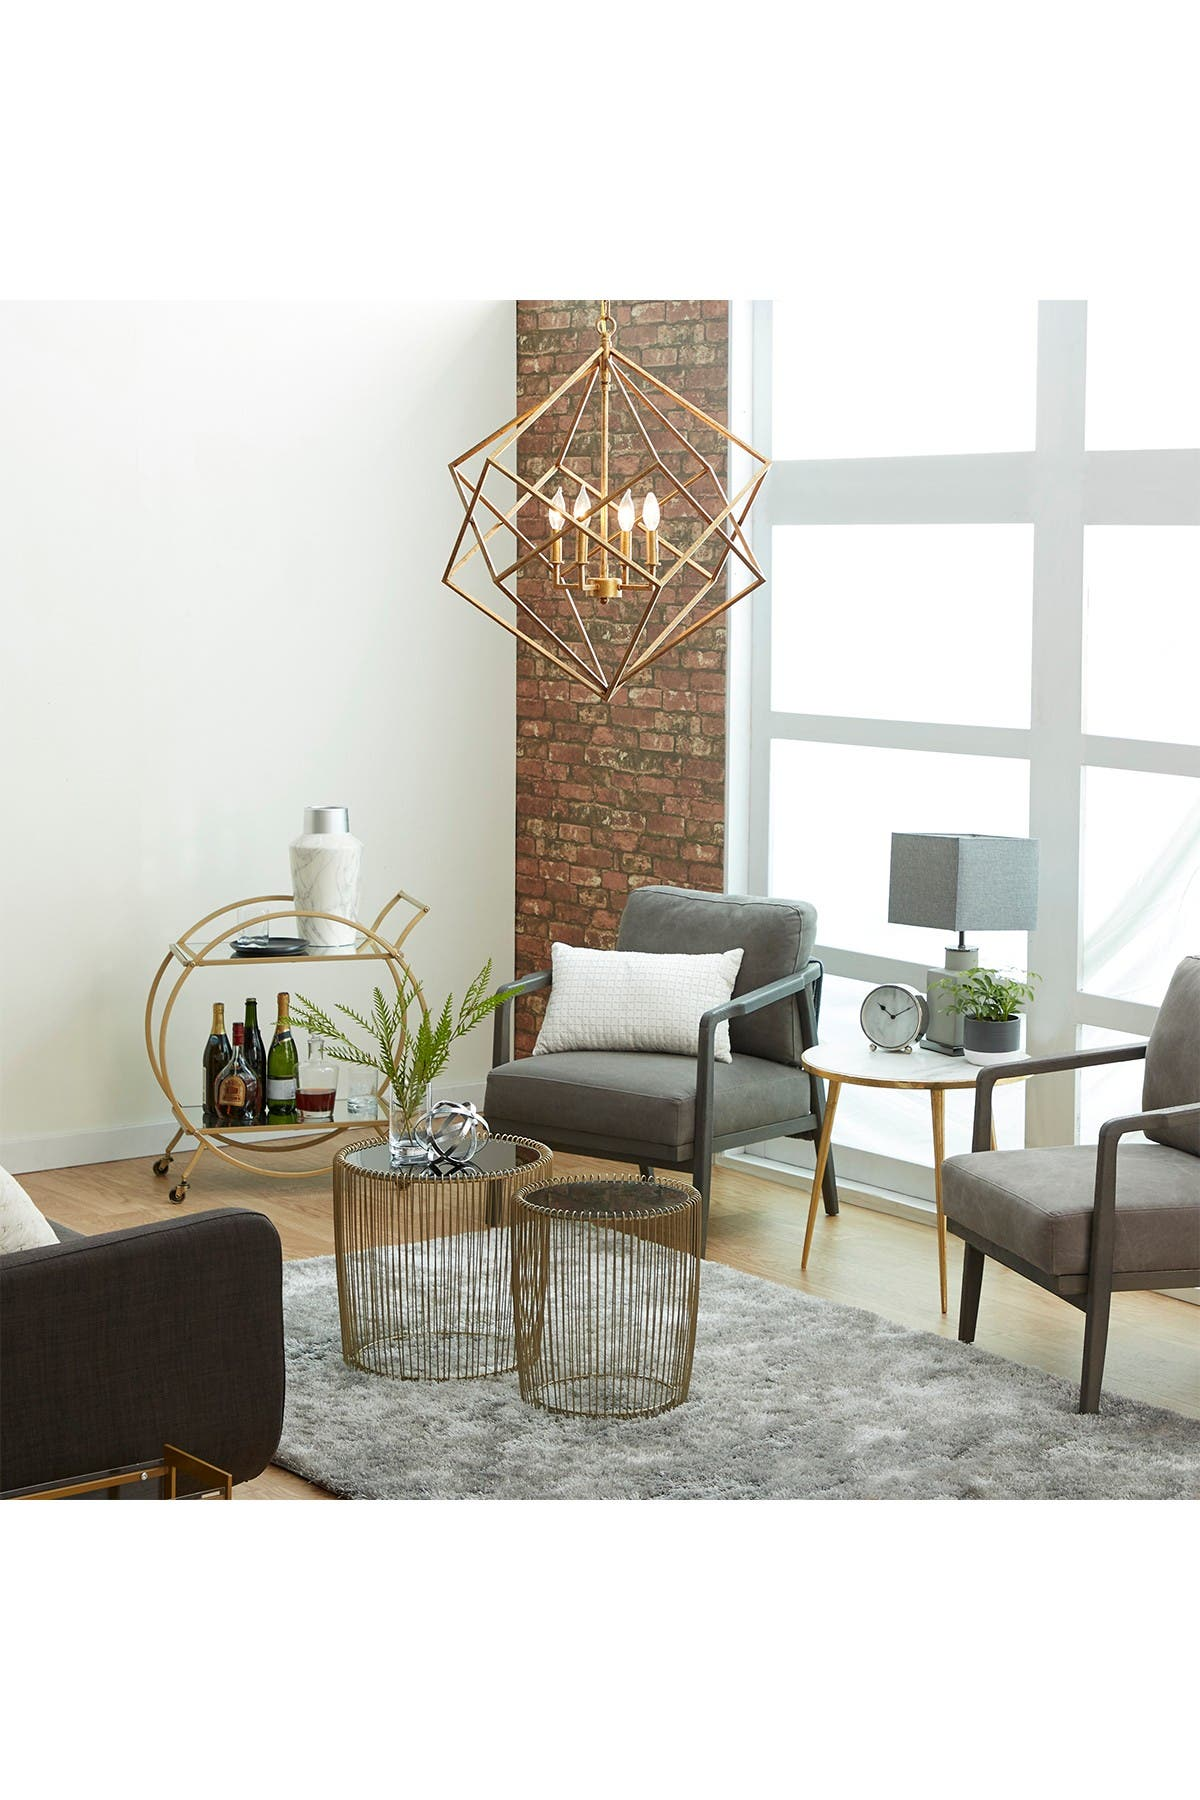 Willow Row Large Textured Gold Metal Geometric Pendant Light with Candelabra Bulbs at Nordstrom Rack